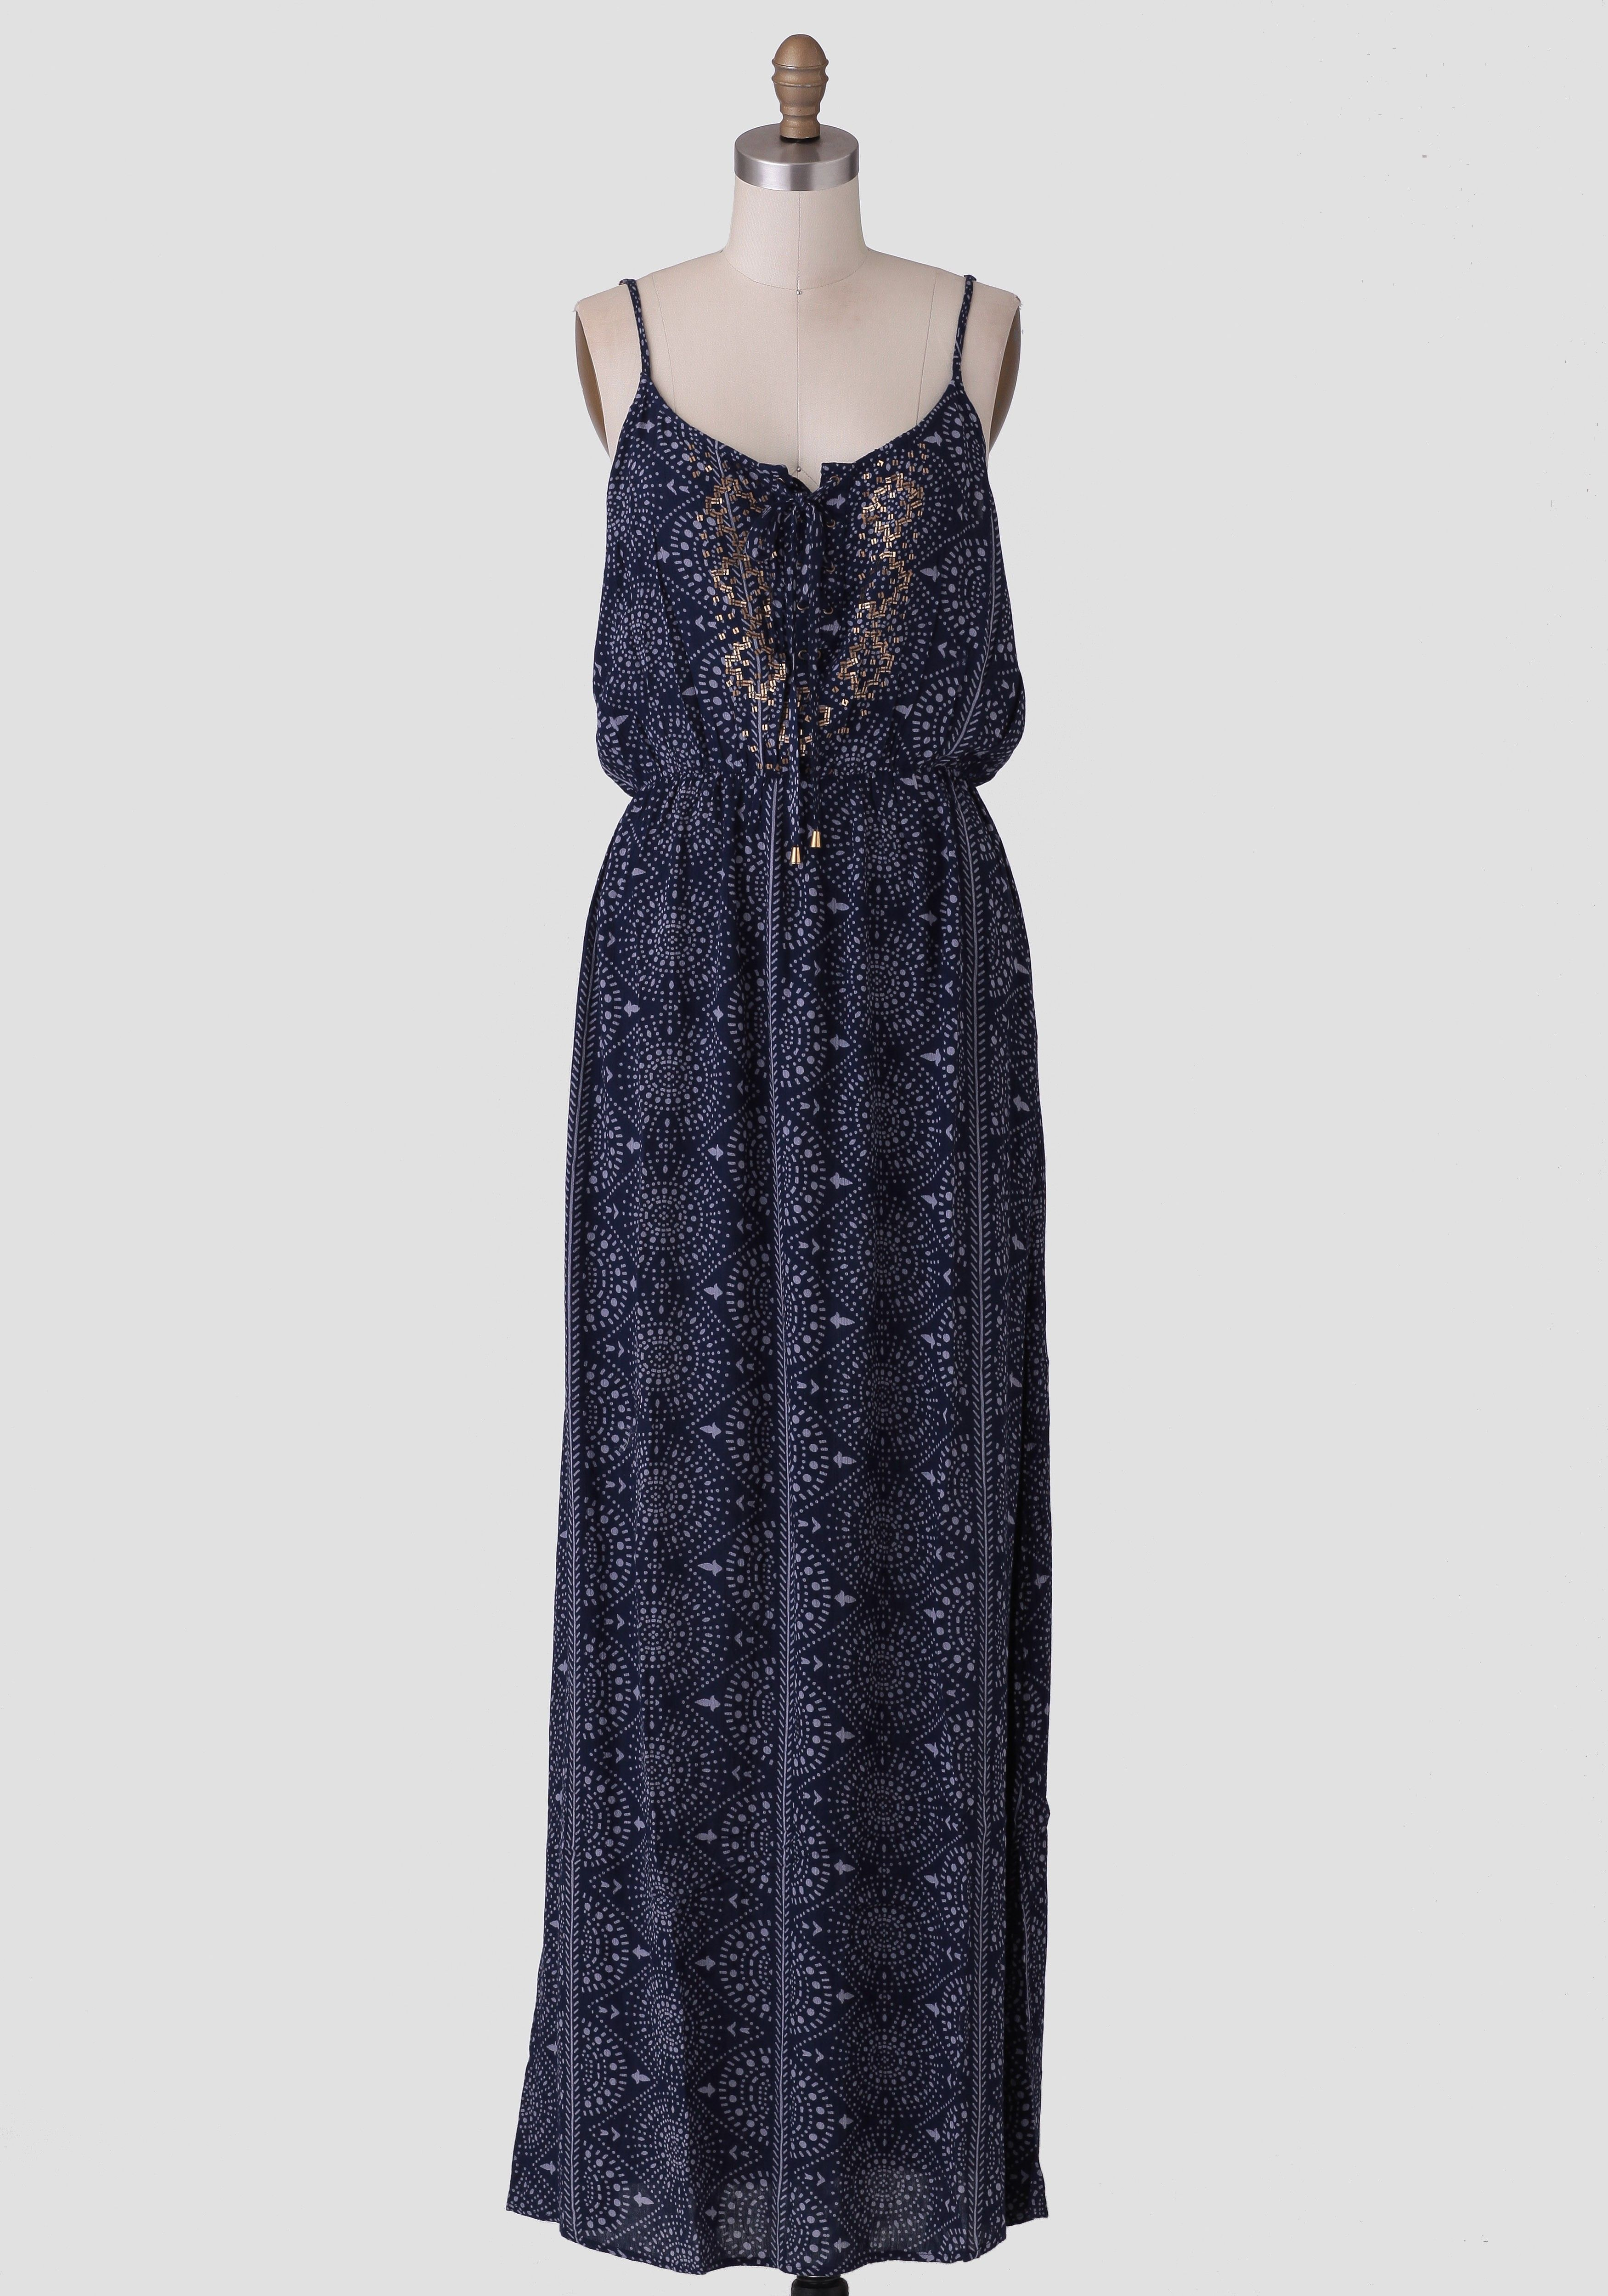 A ruchette musthave this navy blue maxi dress is rendered in a